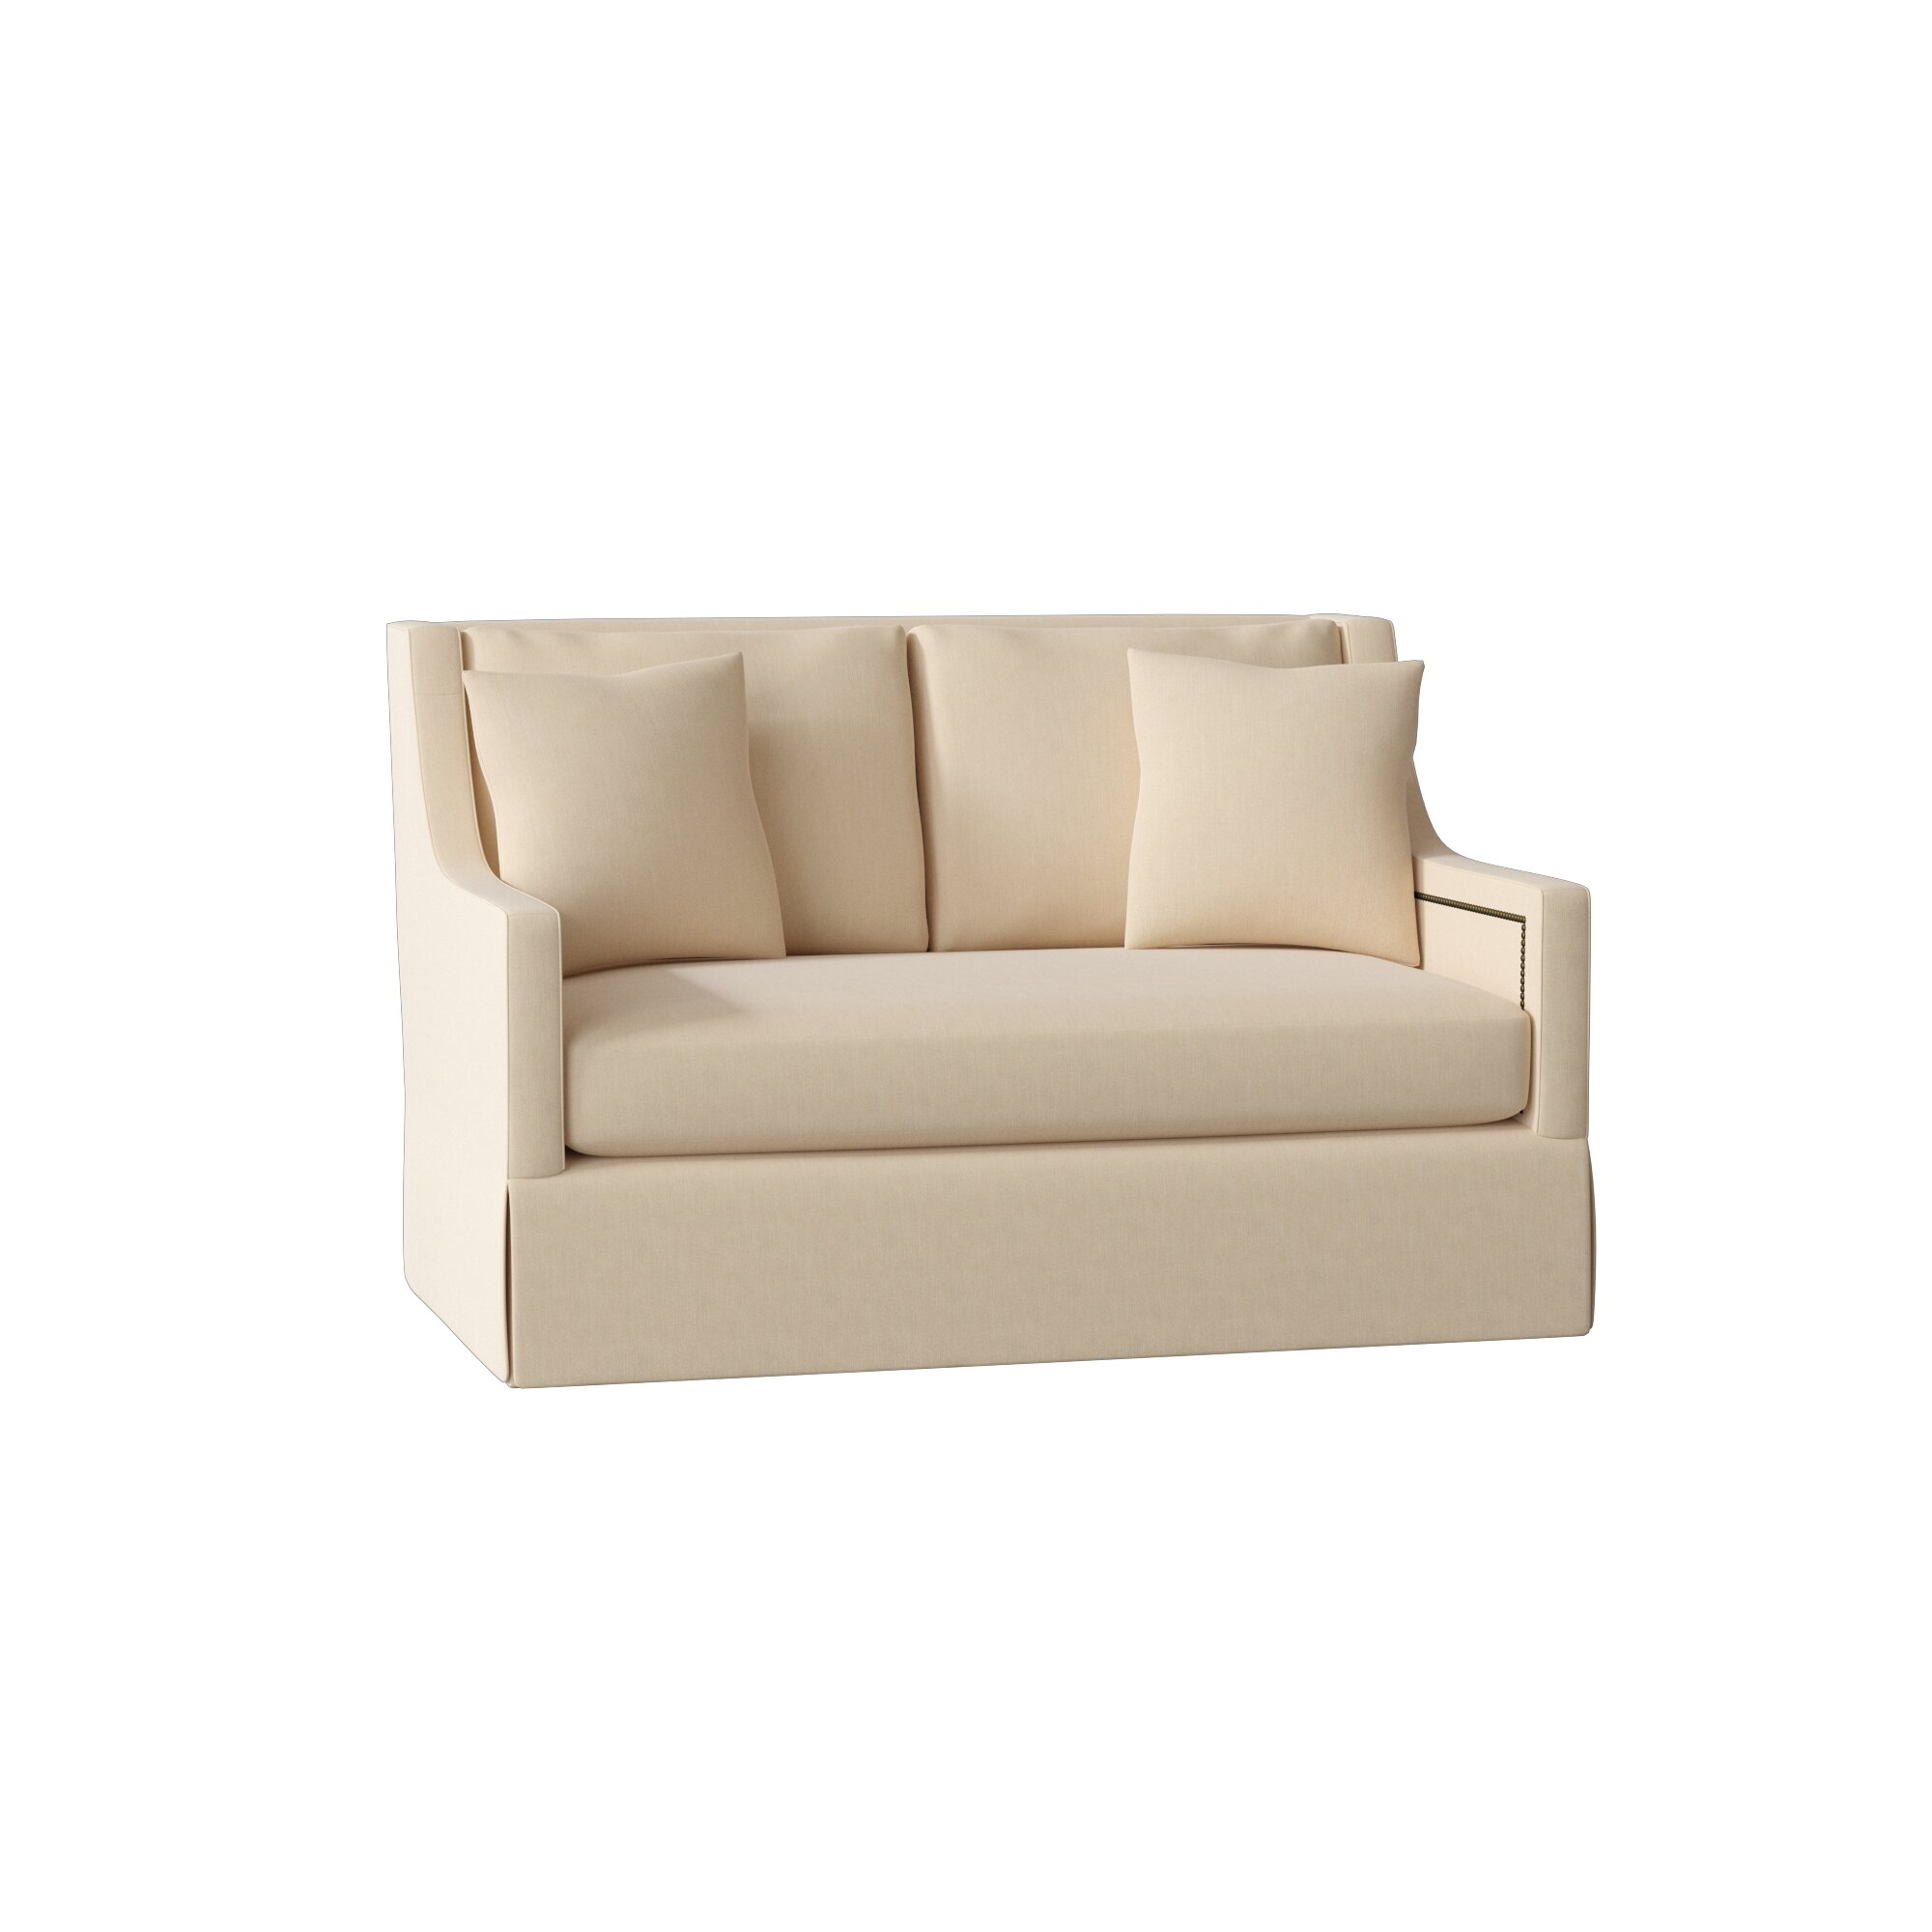 Stupendous Gabby Helena High Back Loveseat Wayfair Pabps2019 Chair Design Images Pabps2019Com